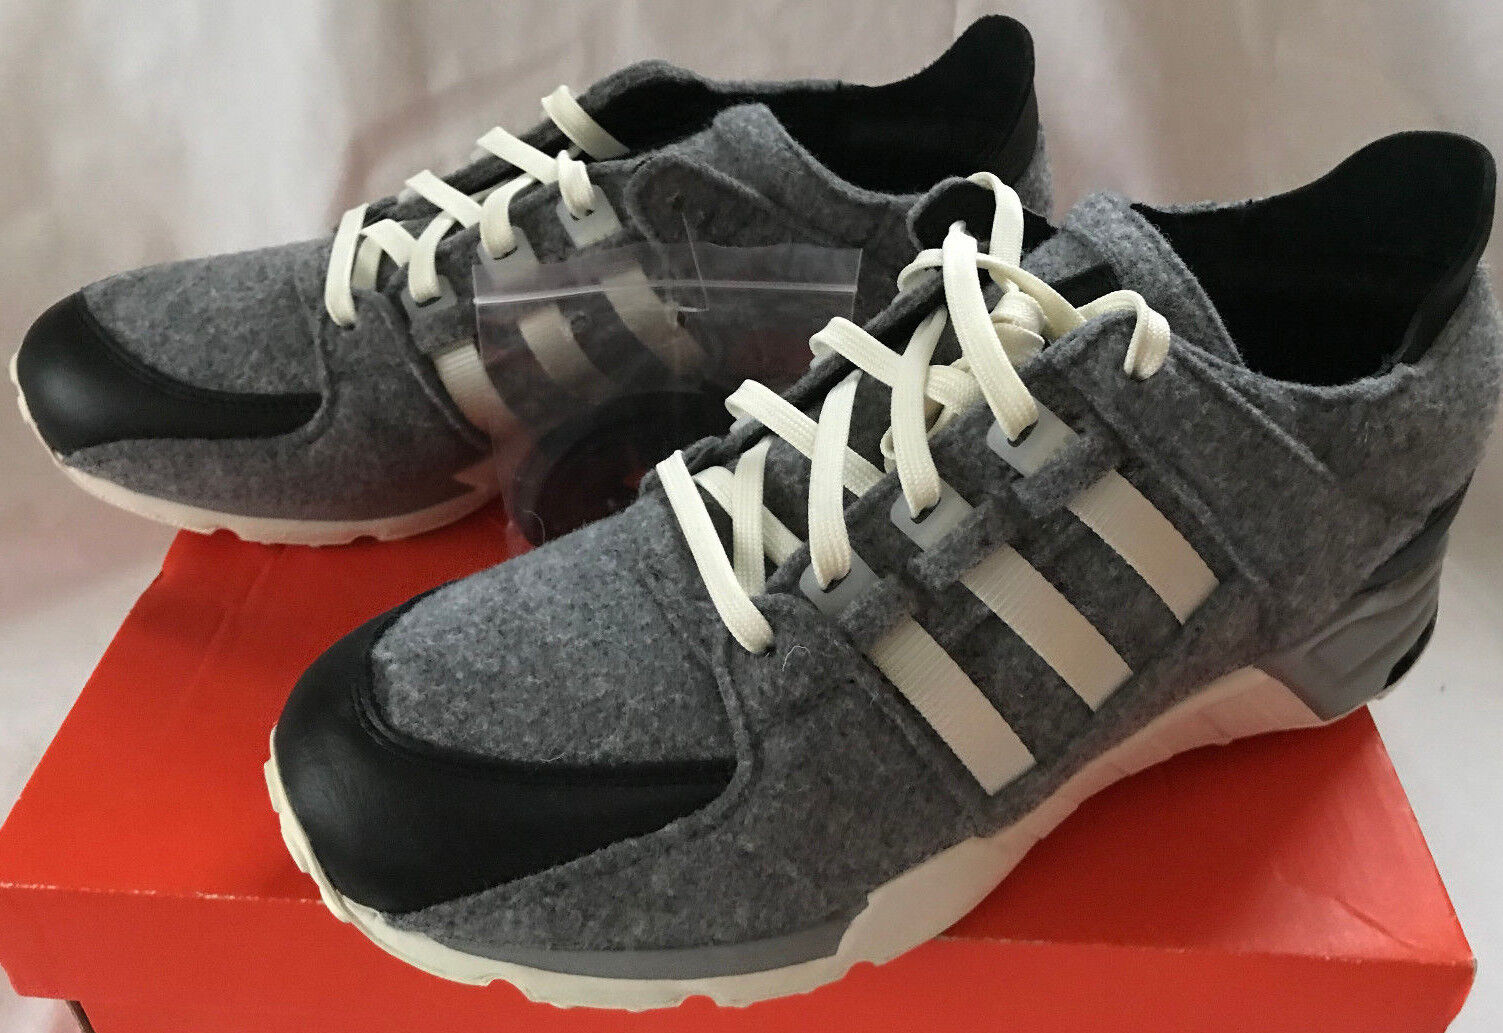 Adidas Adidas Adidas EQT Wool AQ8454 Grey Core Black White Support Running shoes Men's 10.5 91f86c